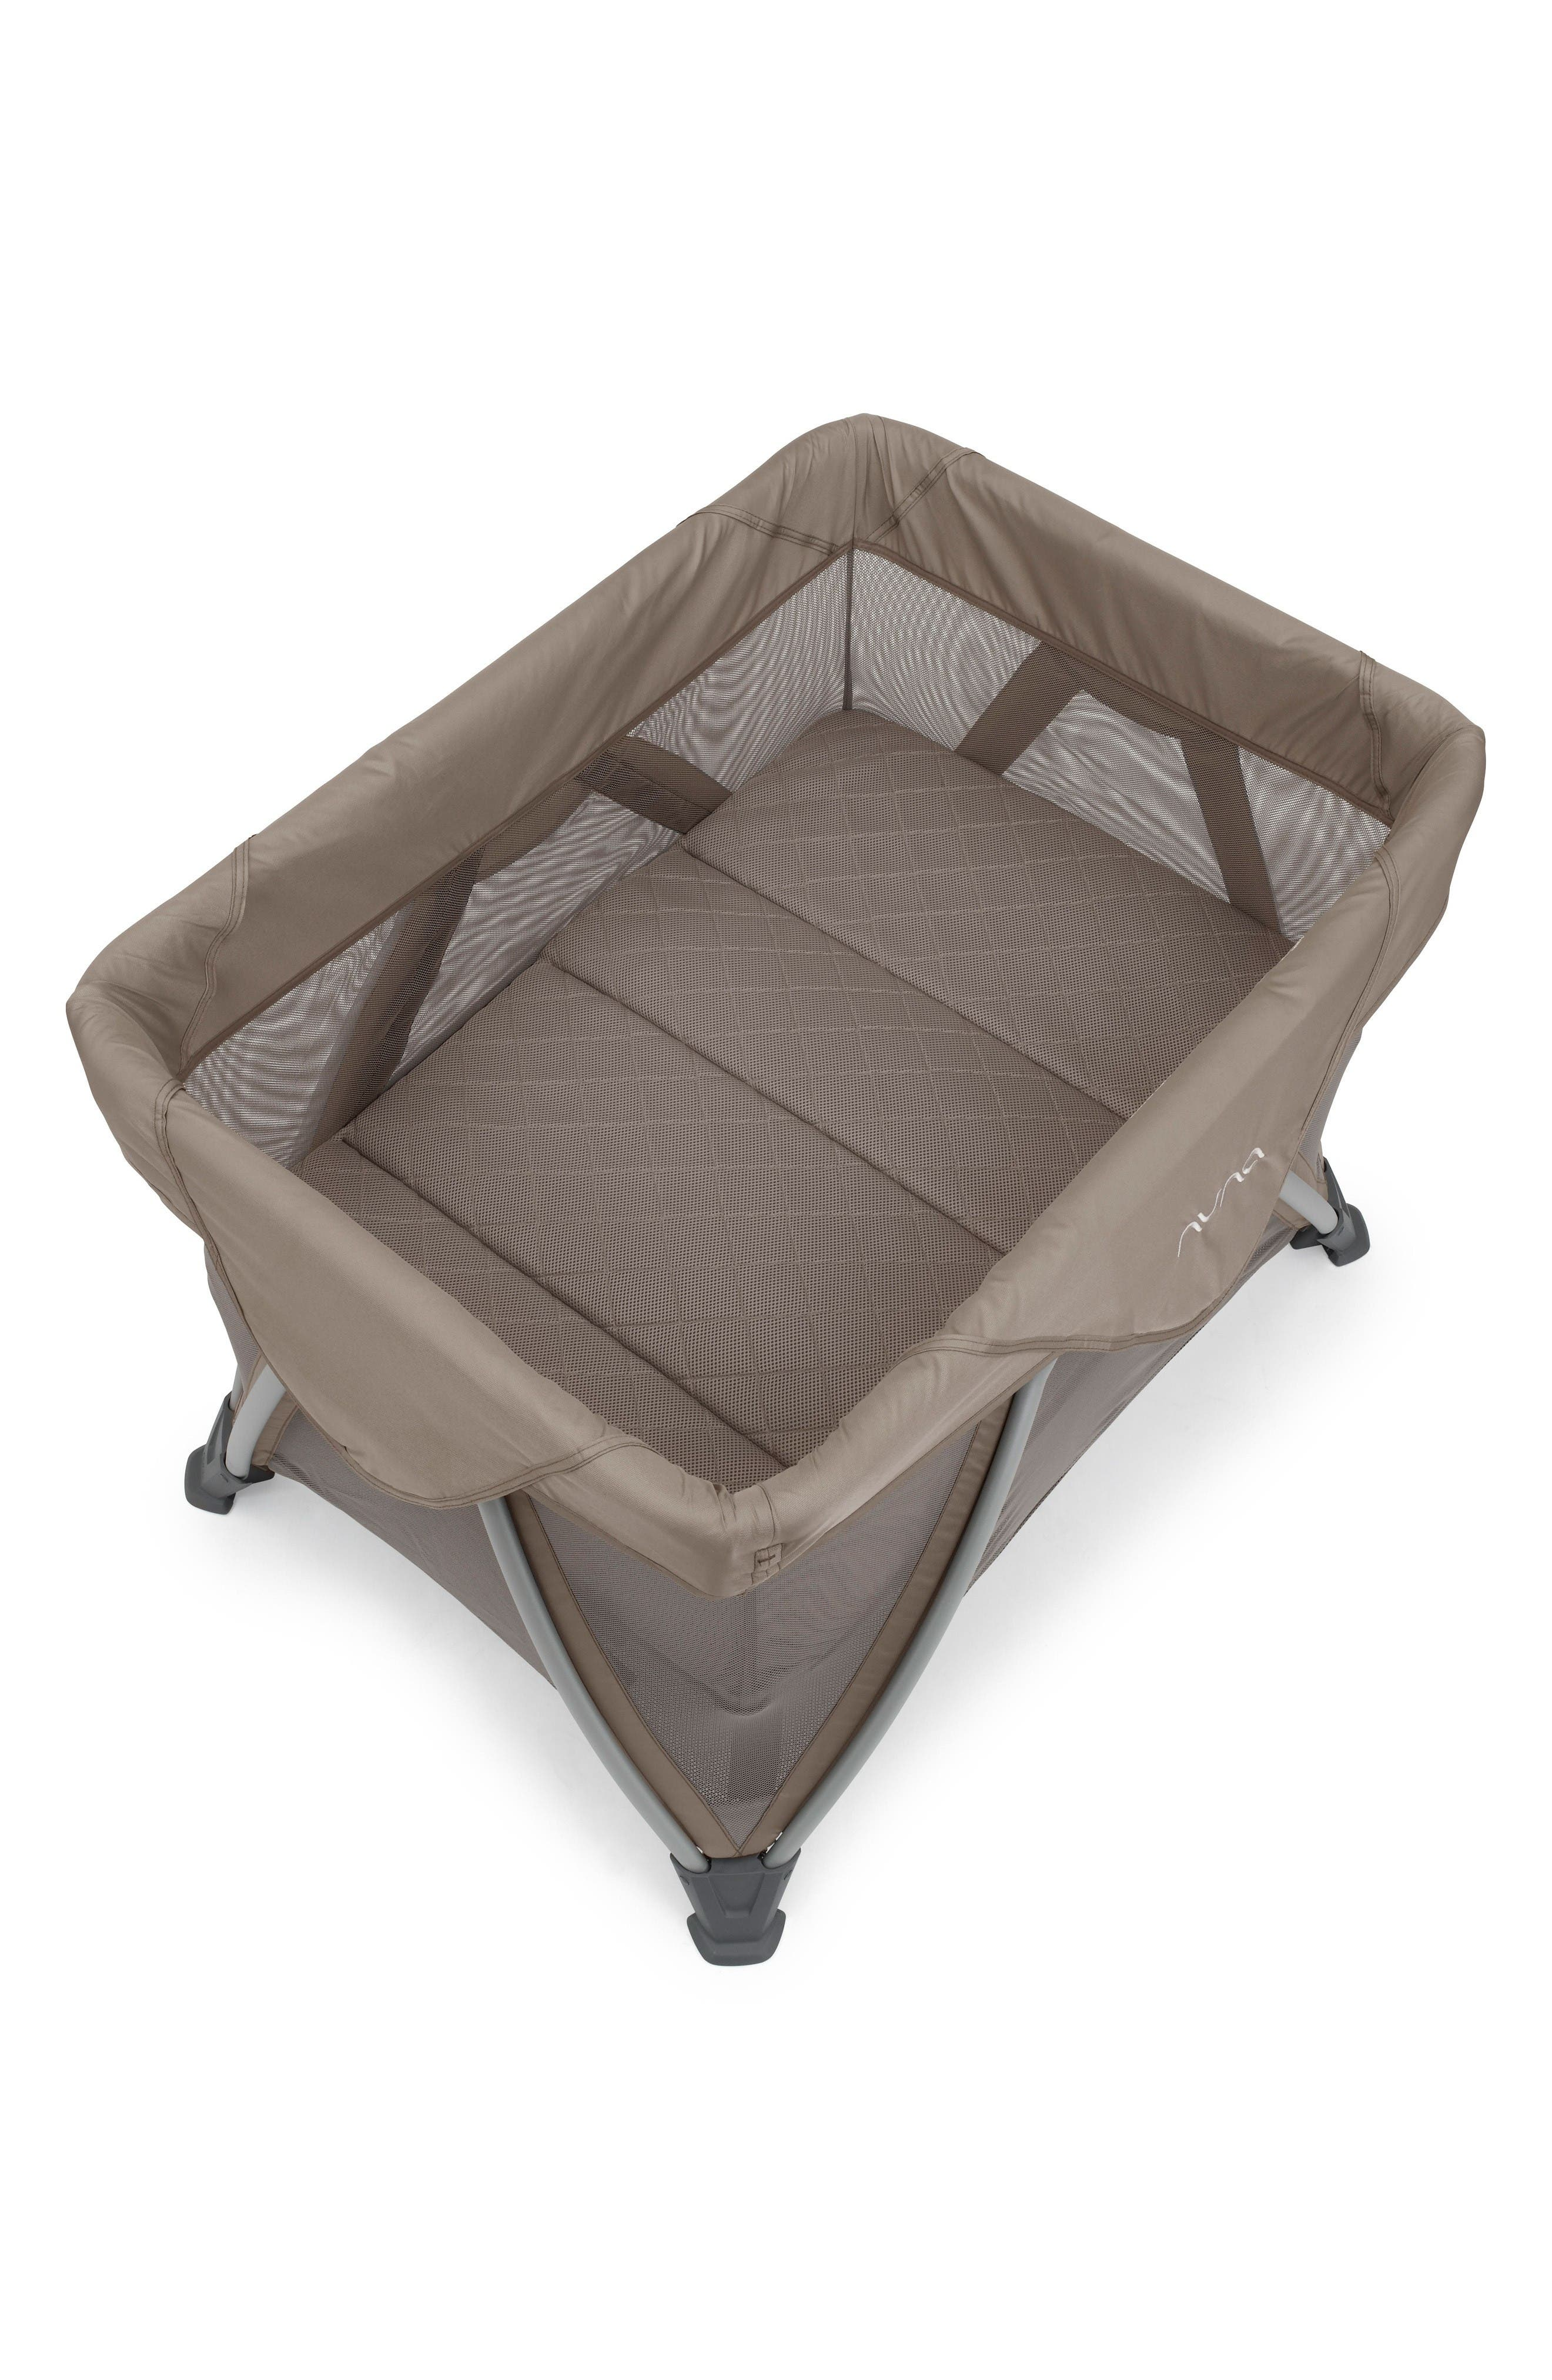 Alternate Image 3  - nuna SENA™ Aire Travel Crib